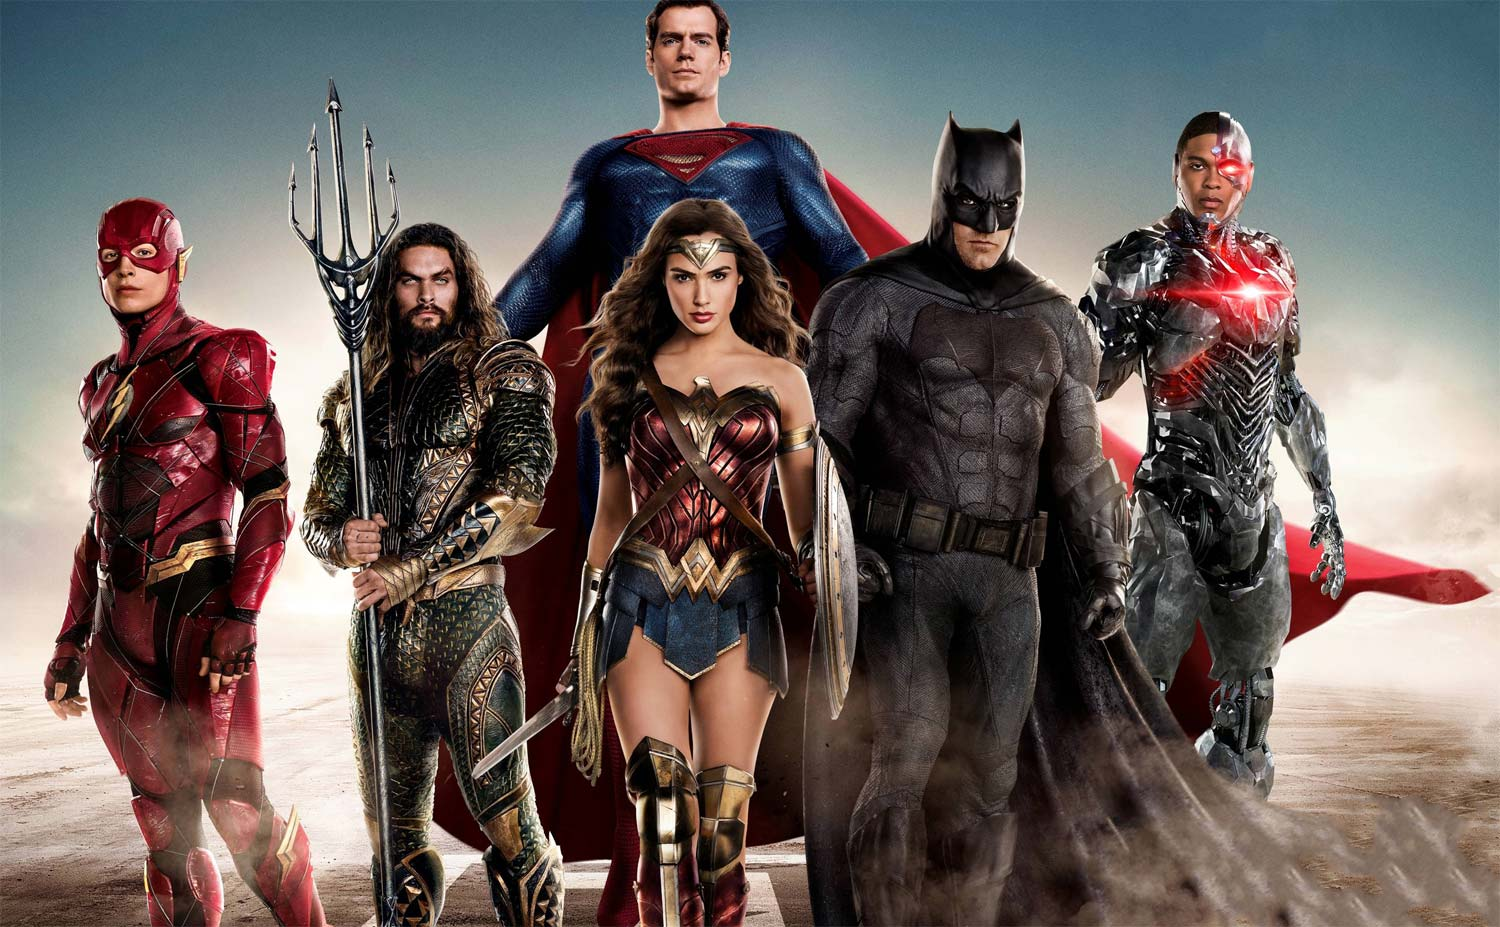 Warner Bros. Pictures Justice League Movie Blu-Ray and Digital Release